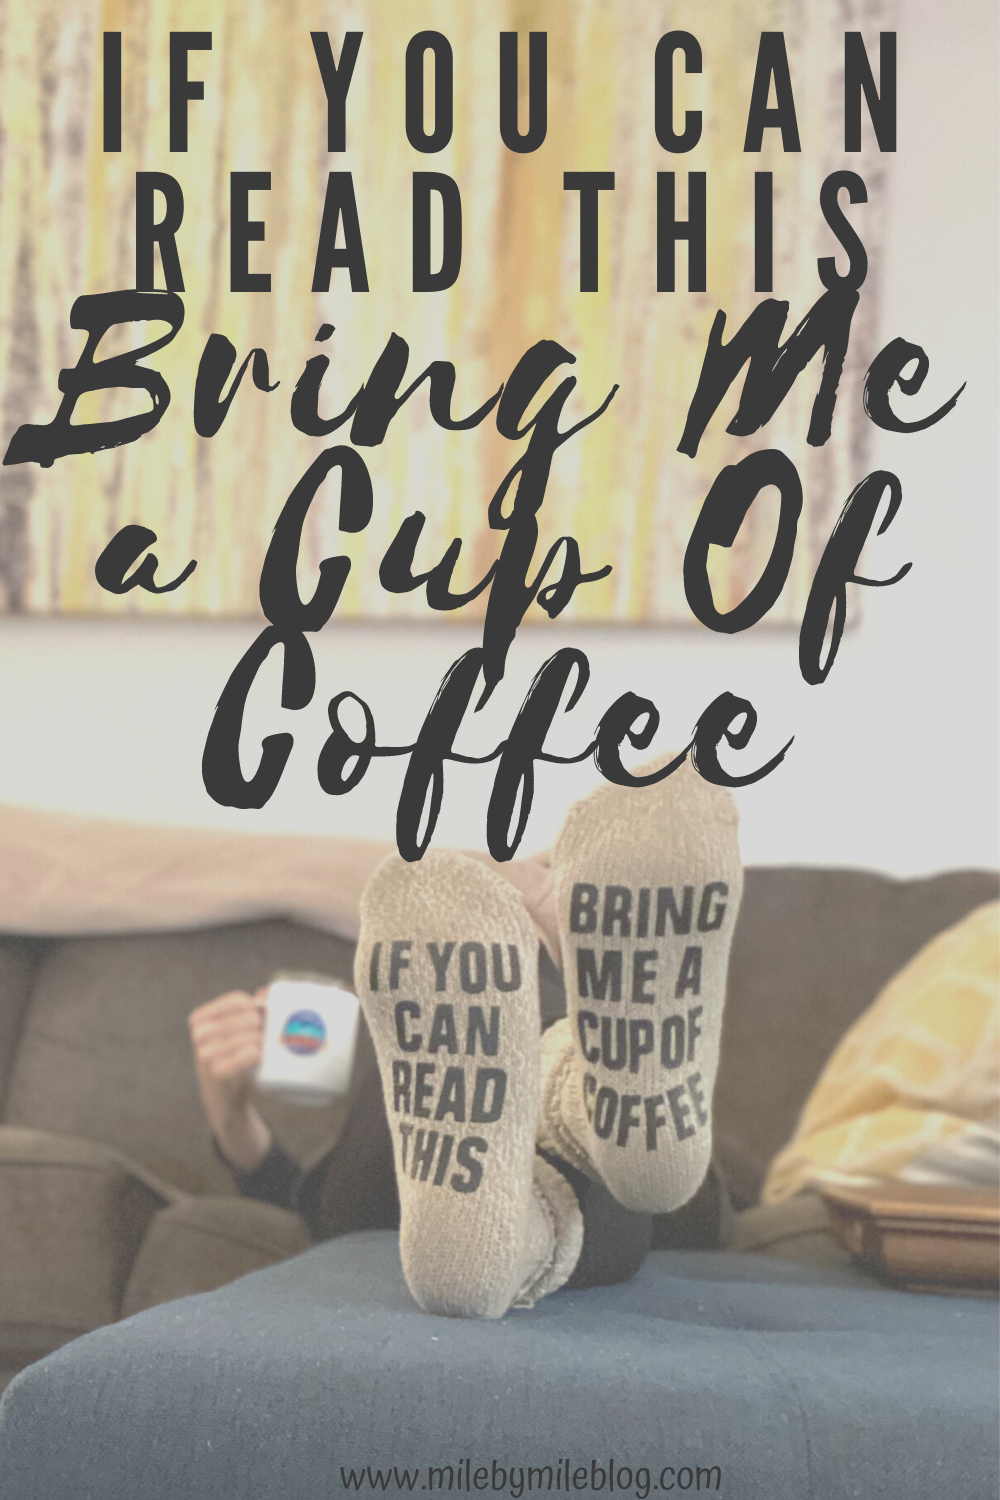 If you can read this, bring me a cup of coffee. It's been a busy few weeks and coffee is everything right now! Let's catch up over coffee.